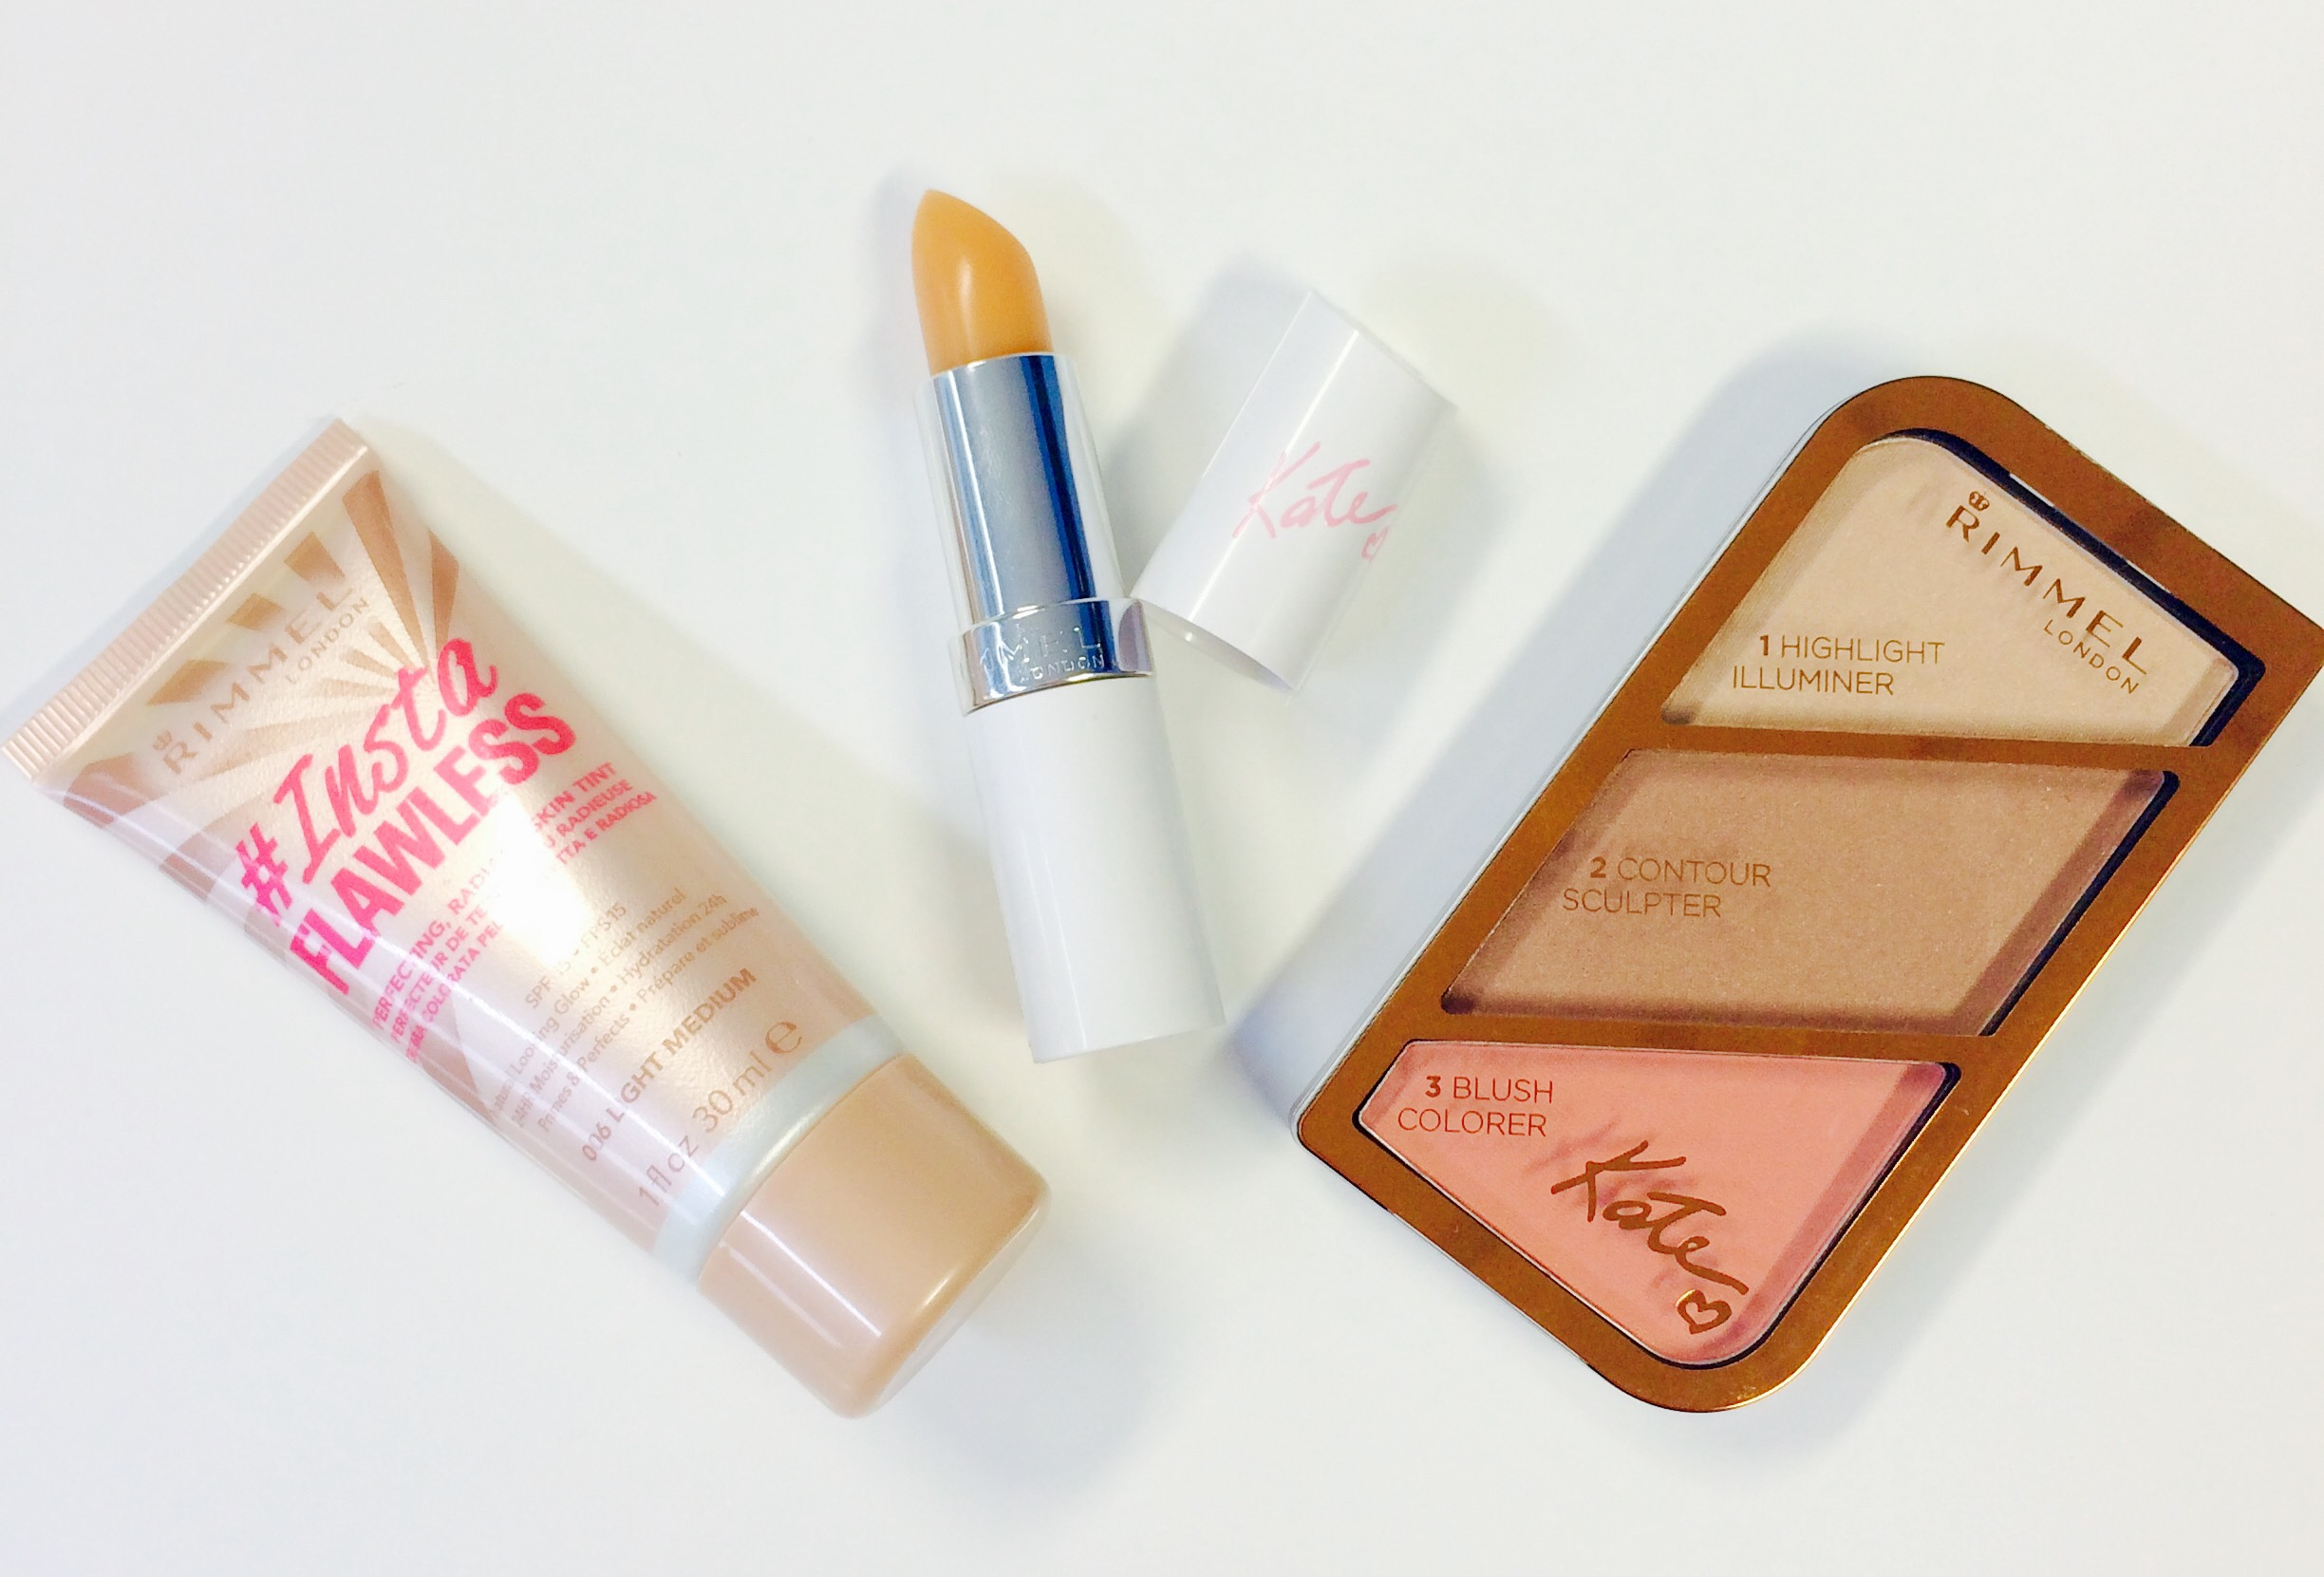 Mrs Tink Gets Instaflawless With Rimmel And Kate Moss Trio 1 Ive Had A Love Affair For Many Years Now So Im Always Excited To Review Try Each New Product They Create Its Certainly Blogger Perk I